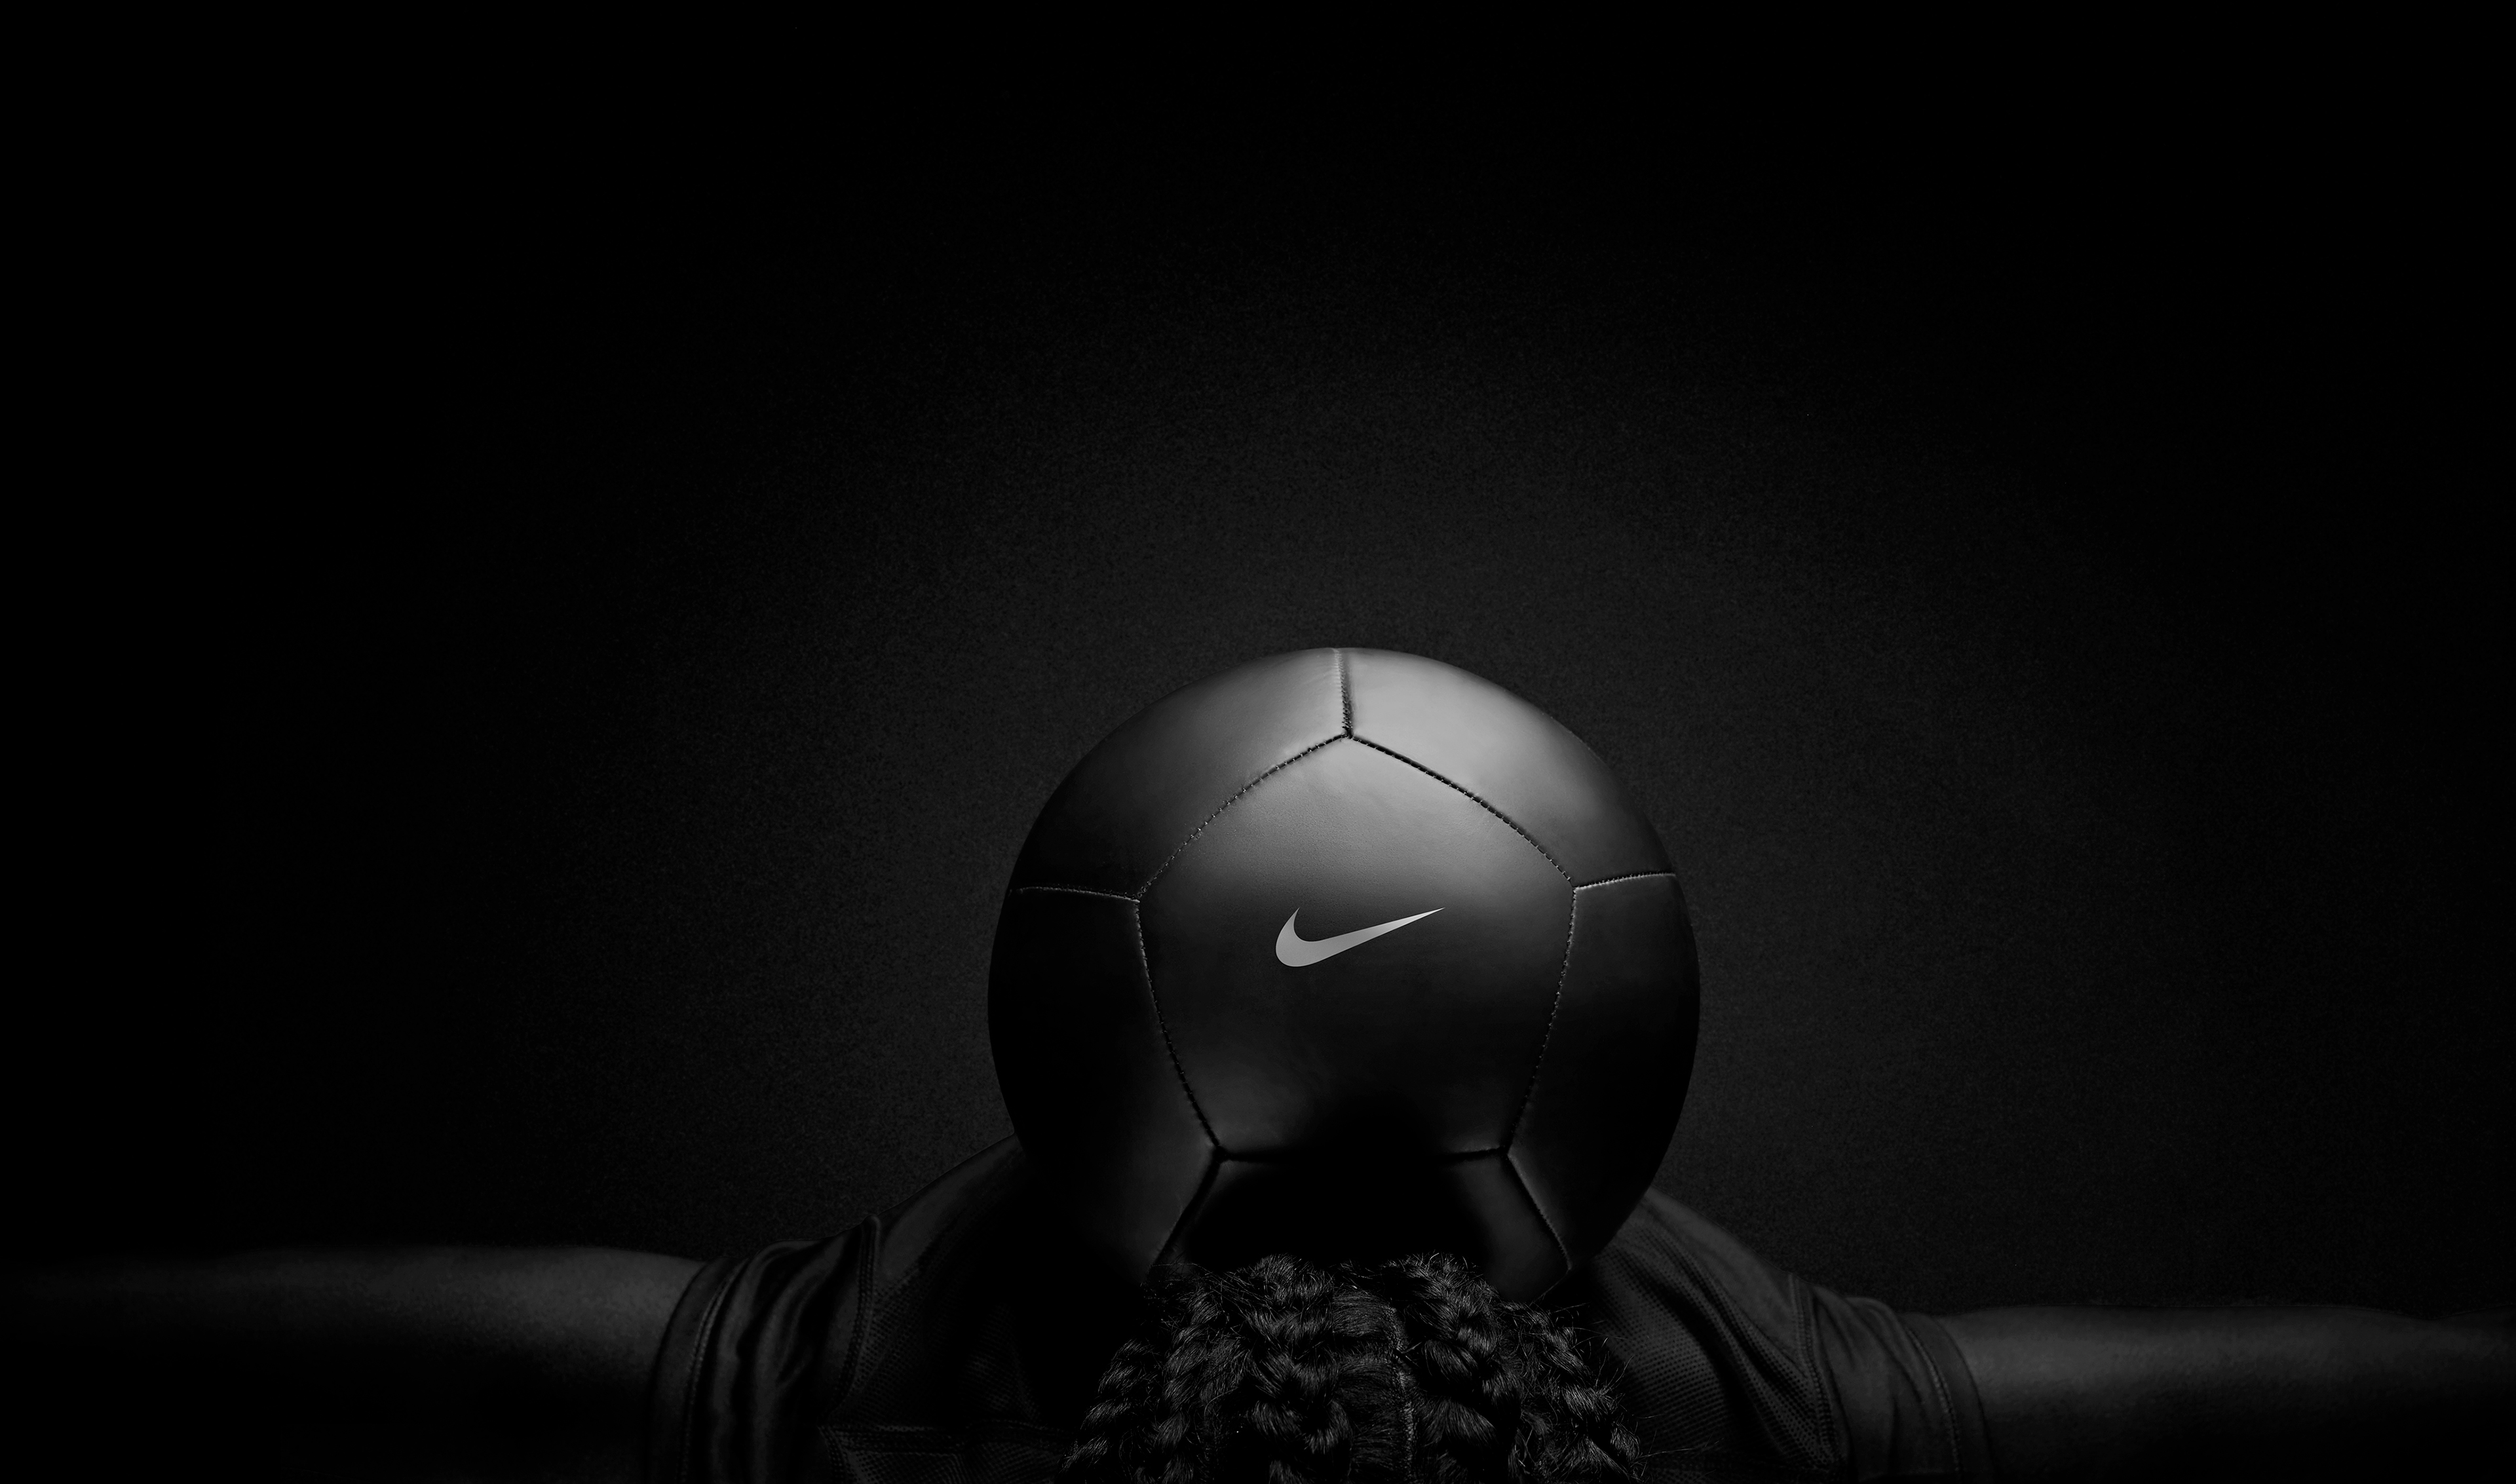 Nike Black Play Football Hd Sports 4k Wallpapers Images Backgrounds Photos And Pictures